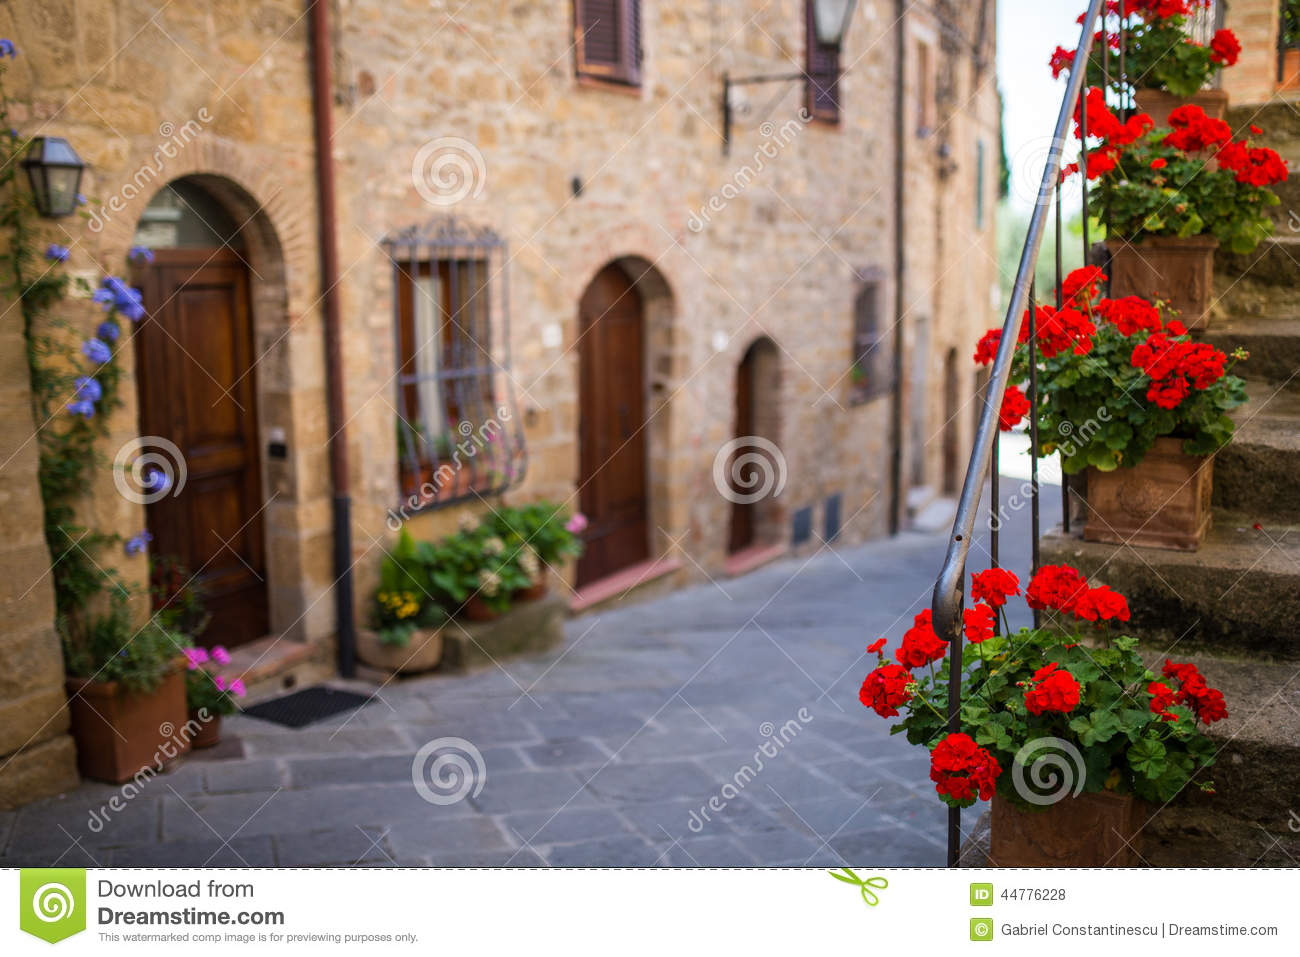 Red flowers in Tuscany, Italy